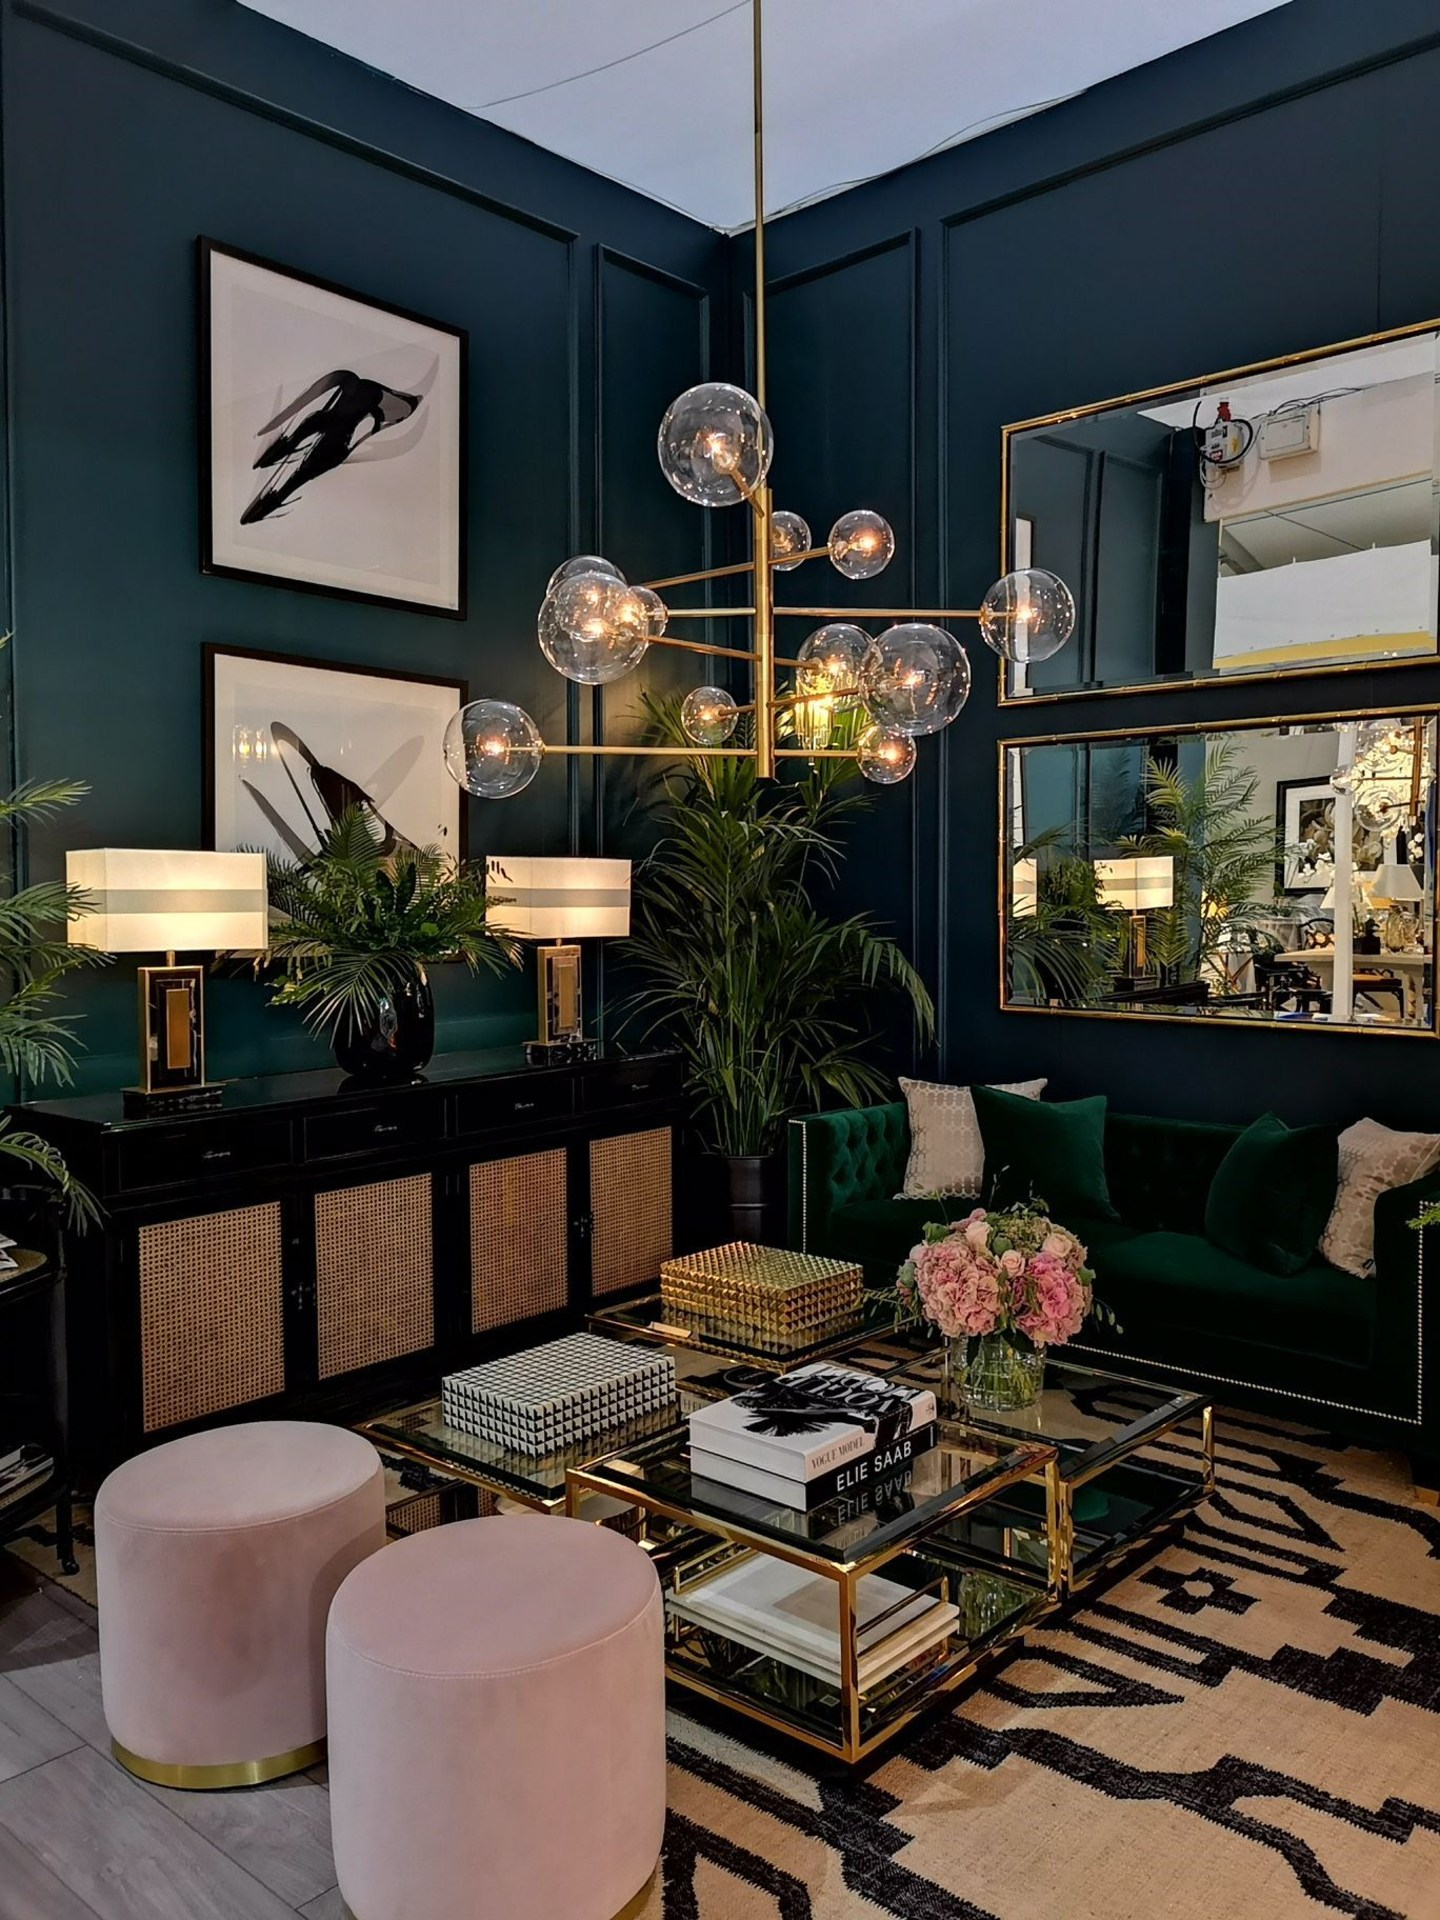 Pink and Green Contemporary Living Room Inspiration   20 Photos That Will Prove Decorating with Pink and Green is the Next Big Thing